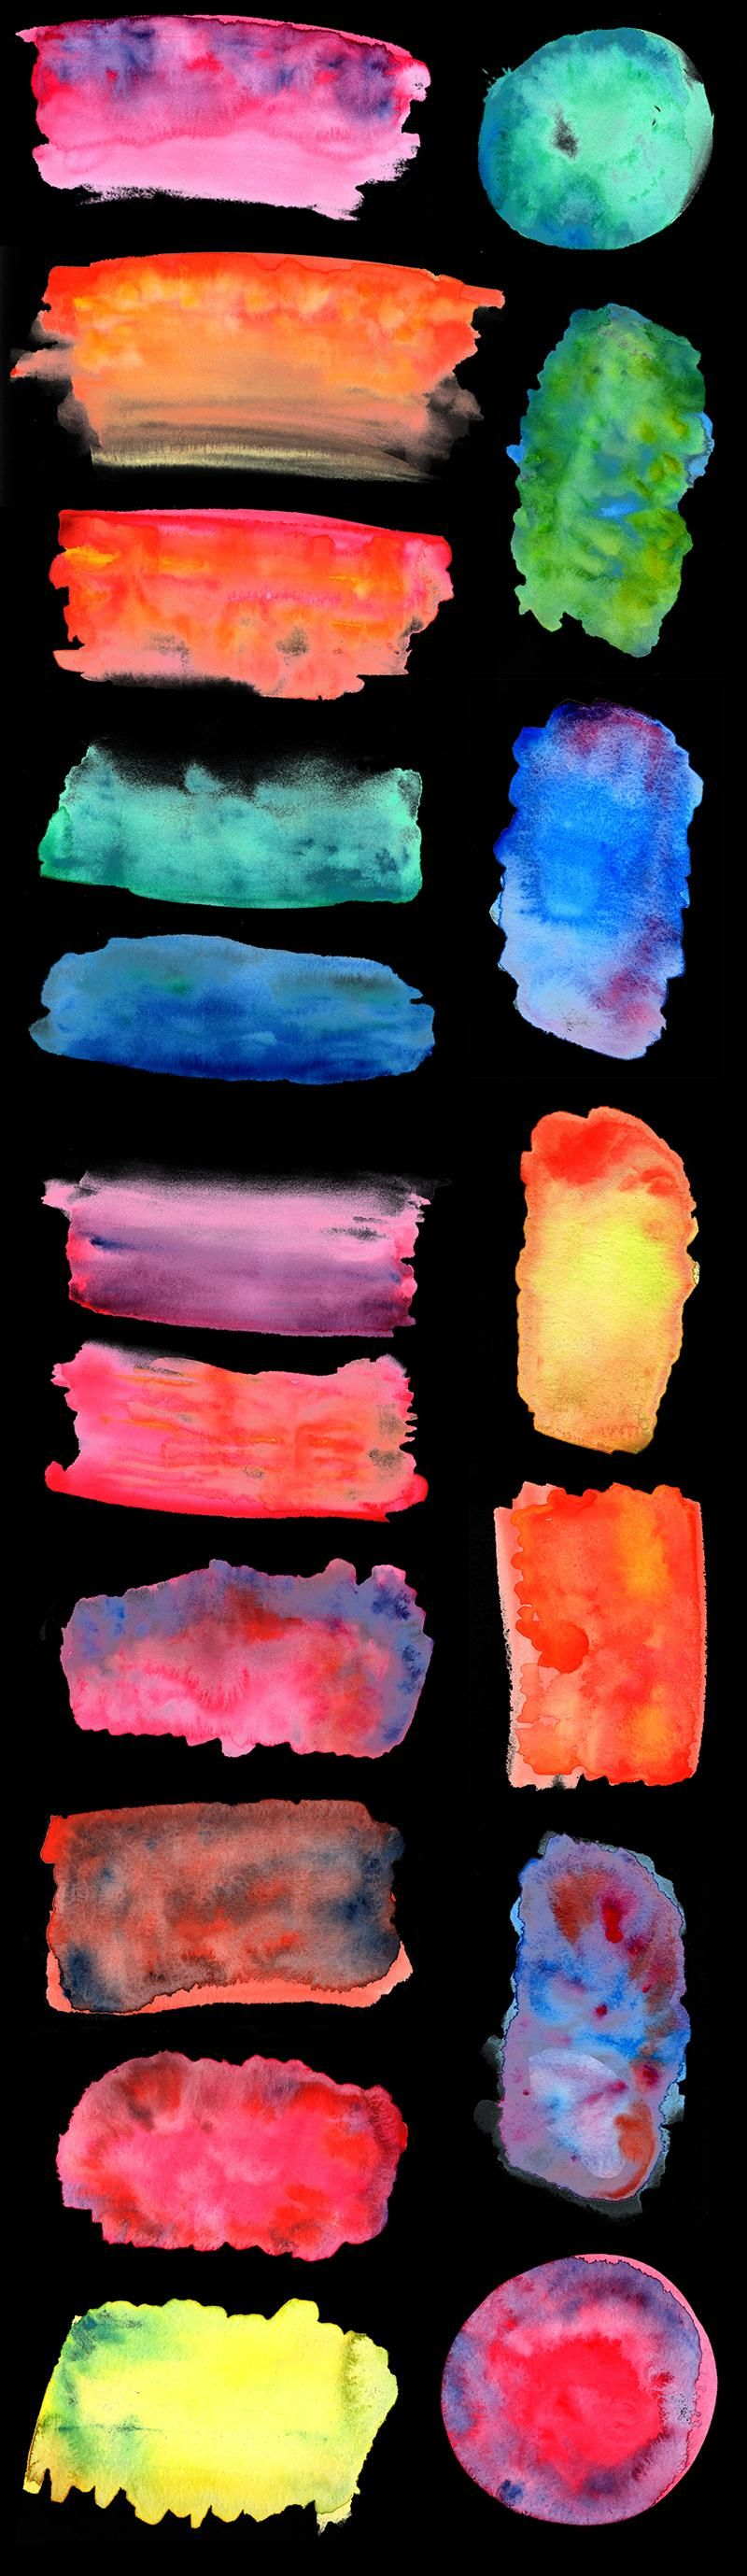 Watercolour textures - image 2 - student project